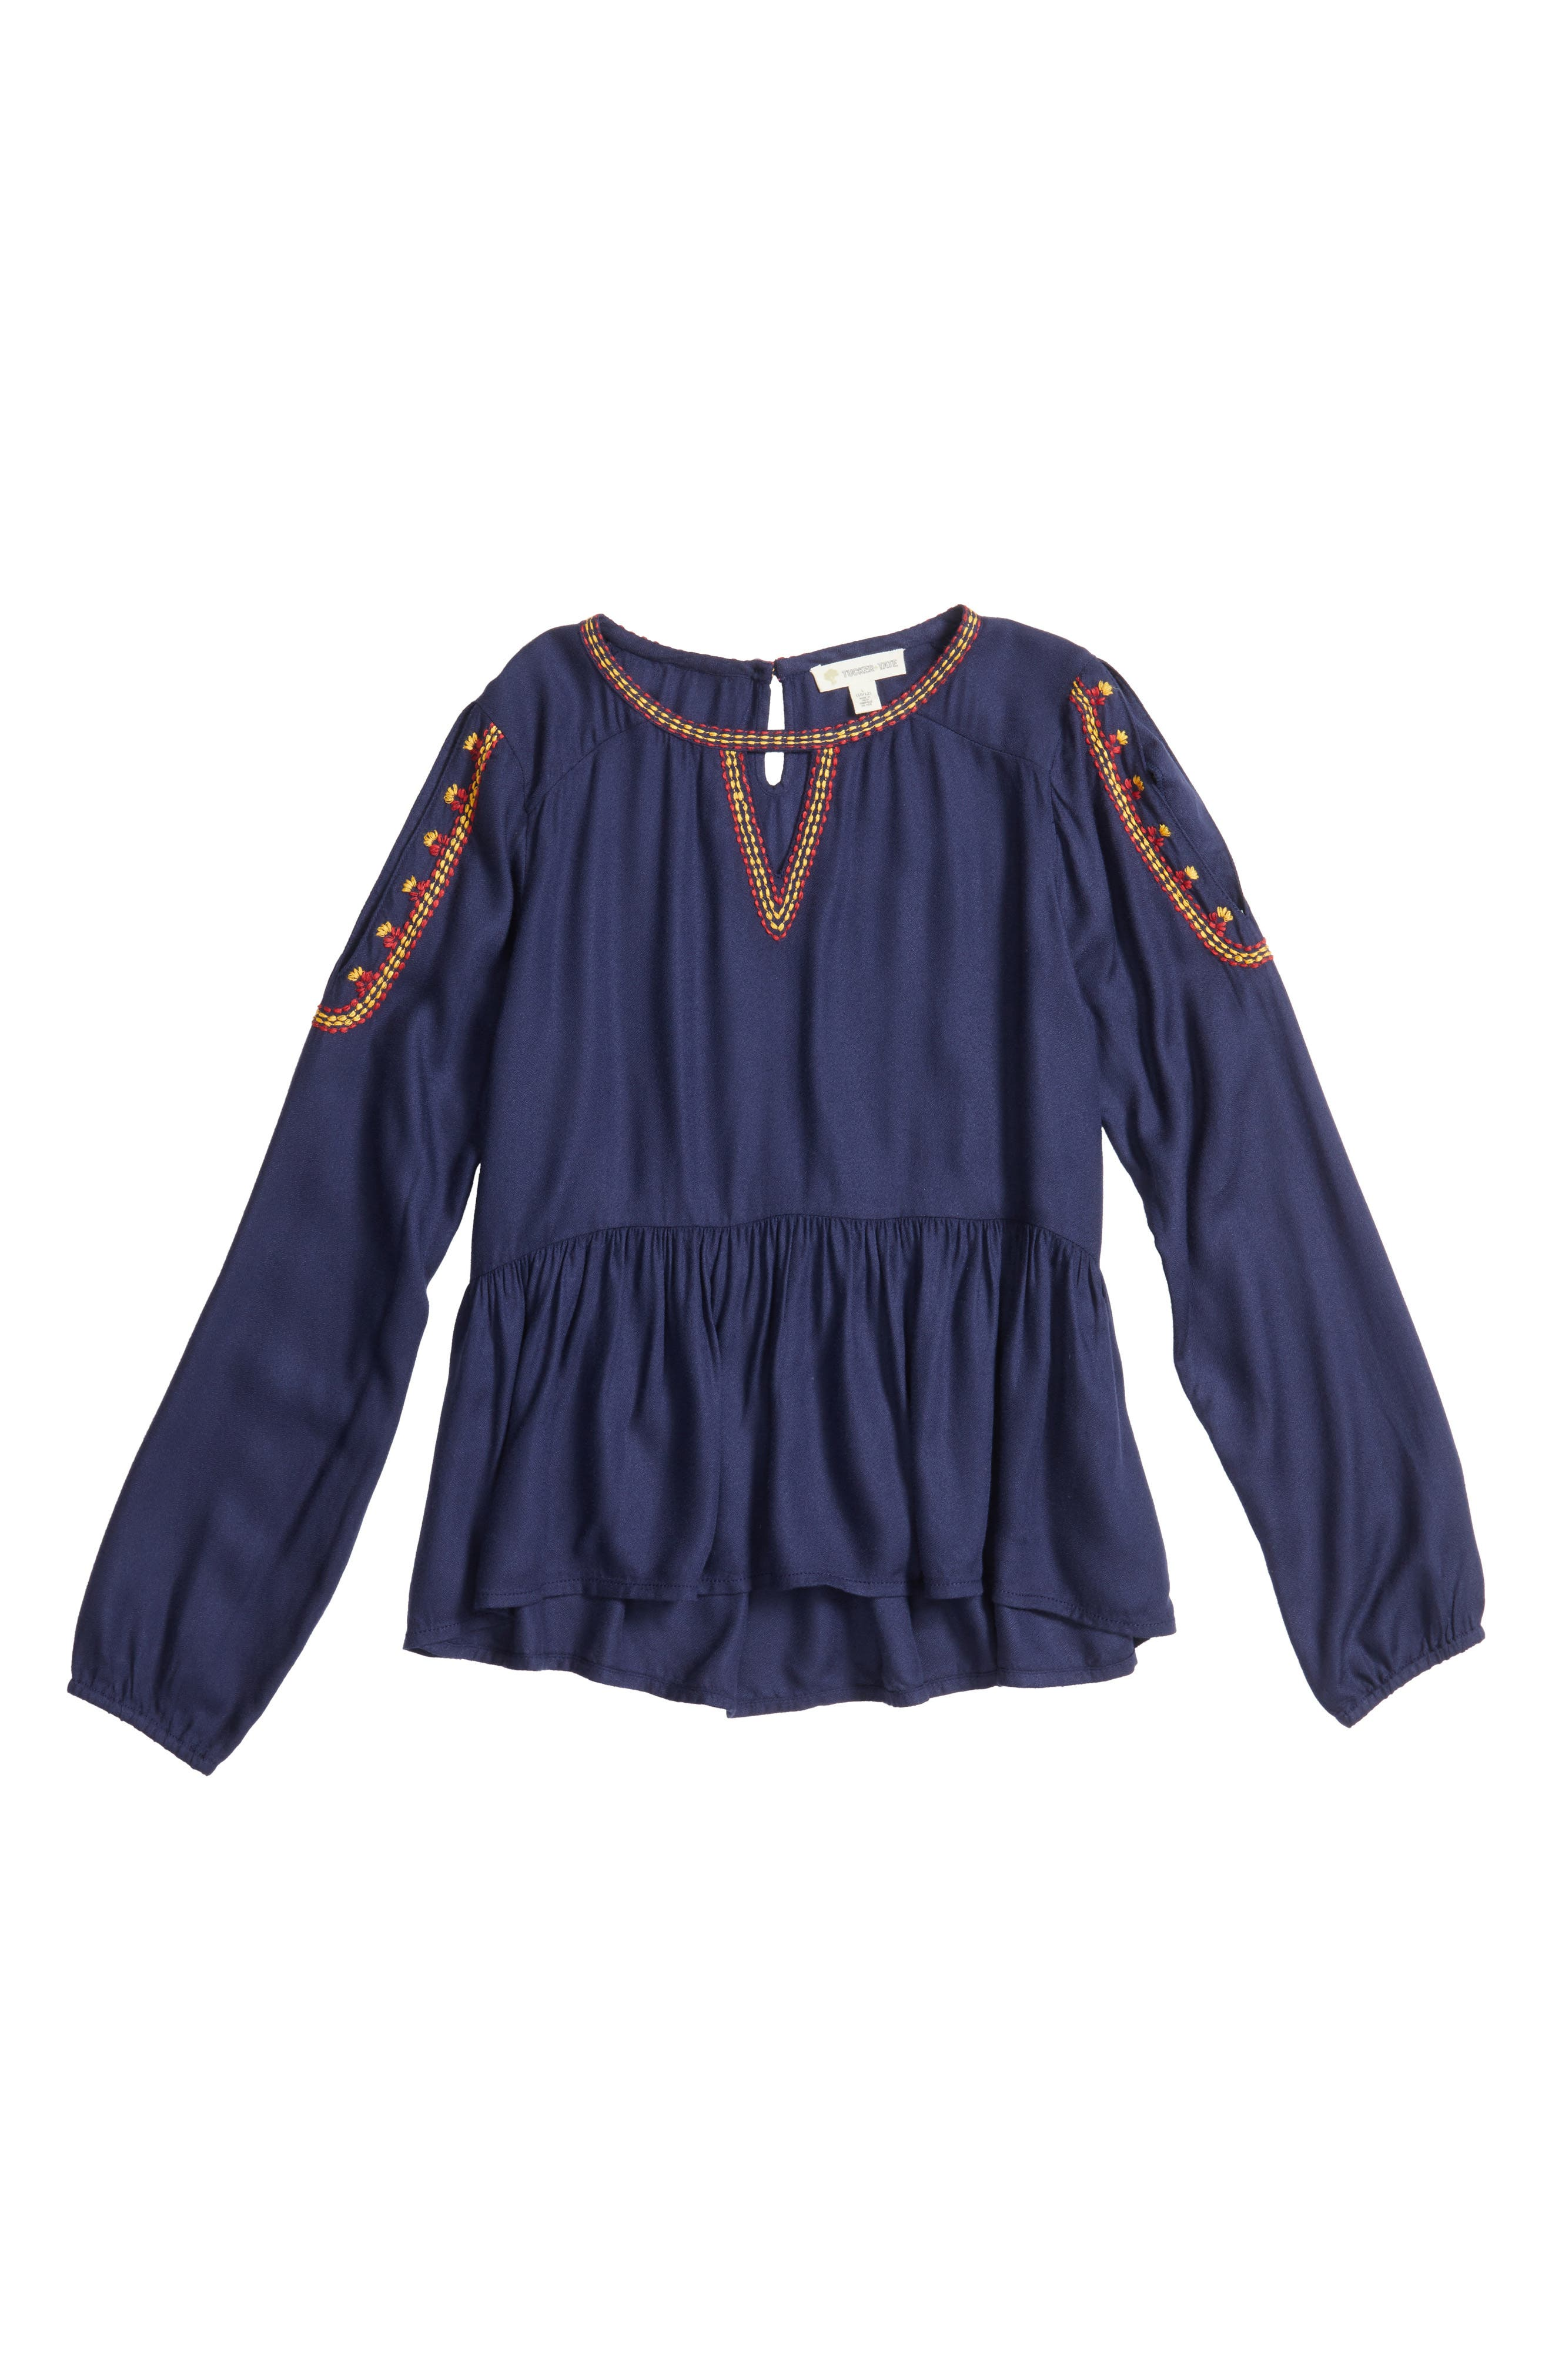 Tucker + Tate Embroidered Top (Big Girls)